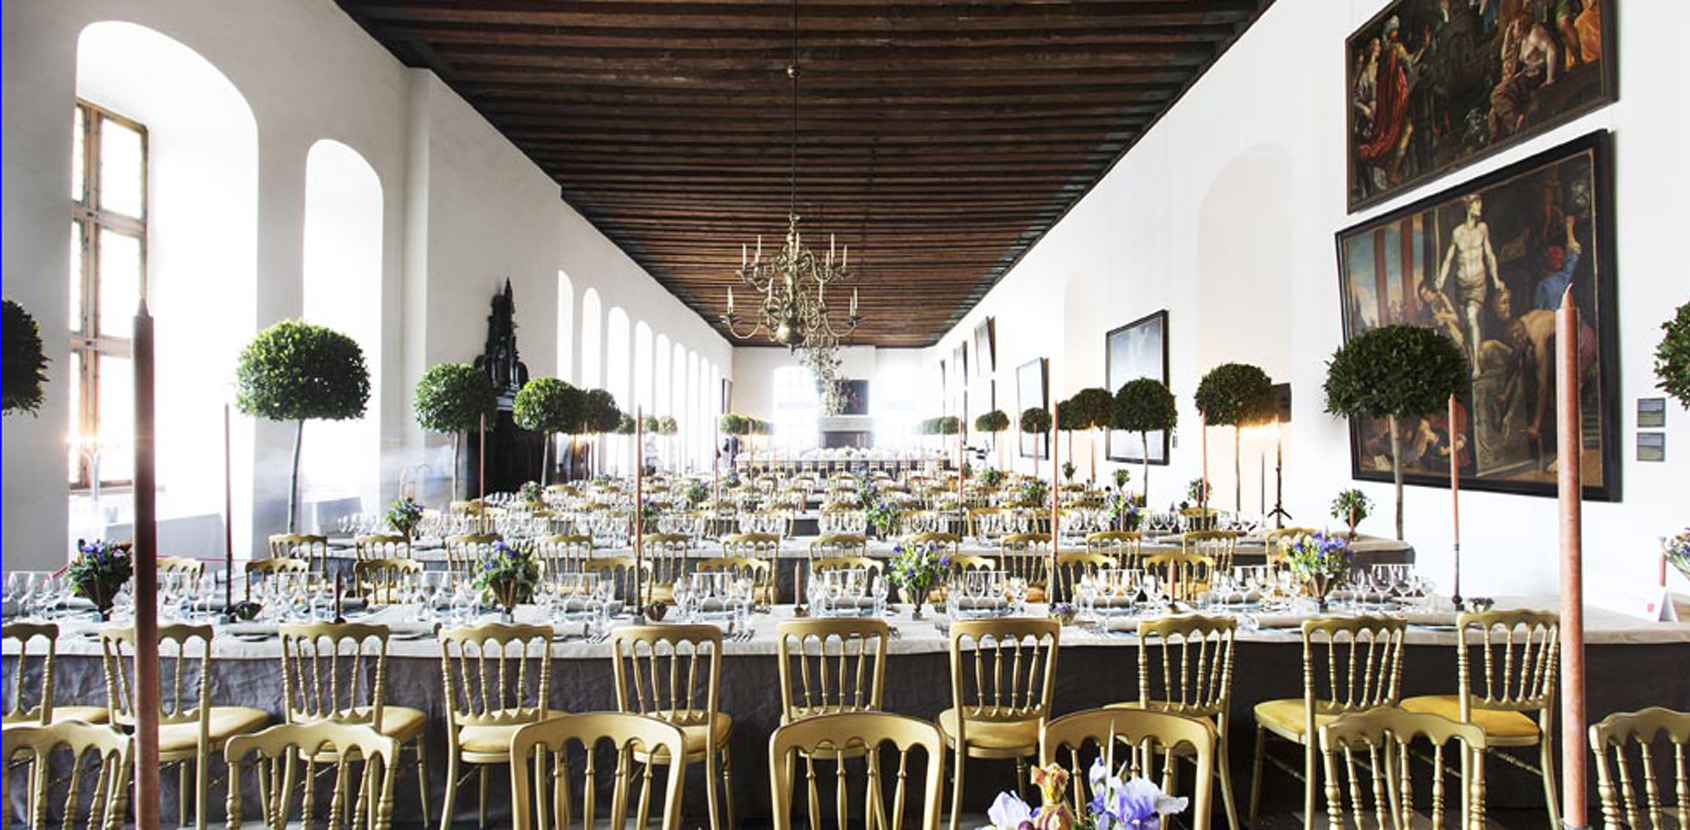 Banquets at Kronborg Castle with oysters and honey-scented candles. Photo: Thorkild Jensen